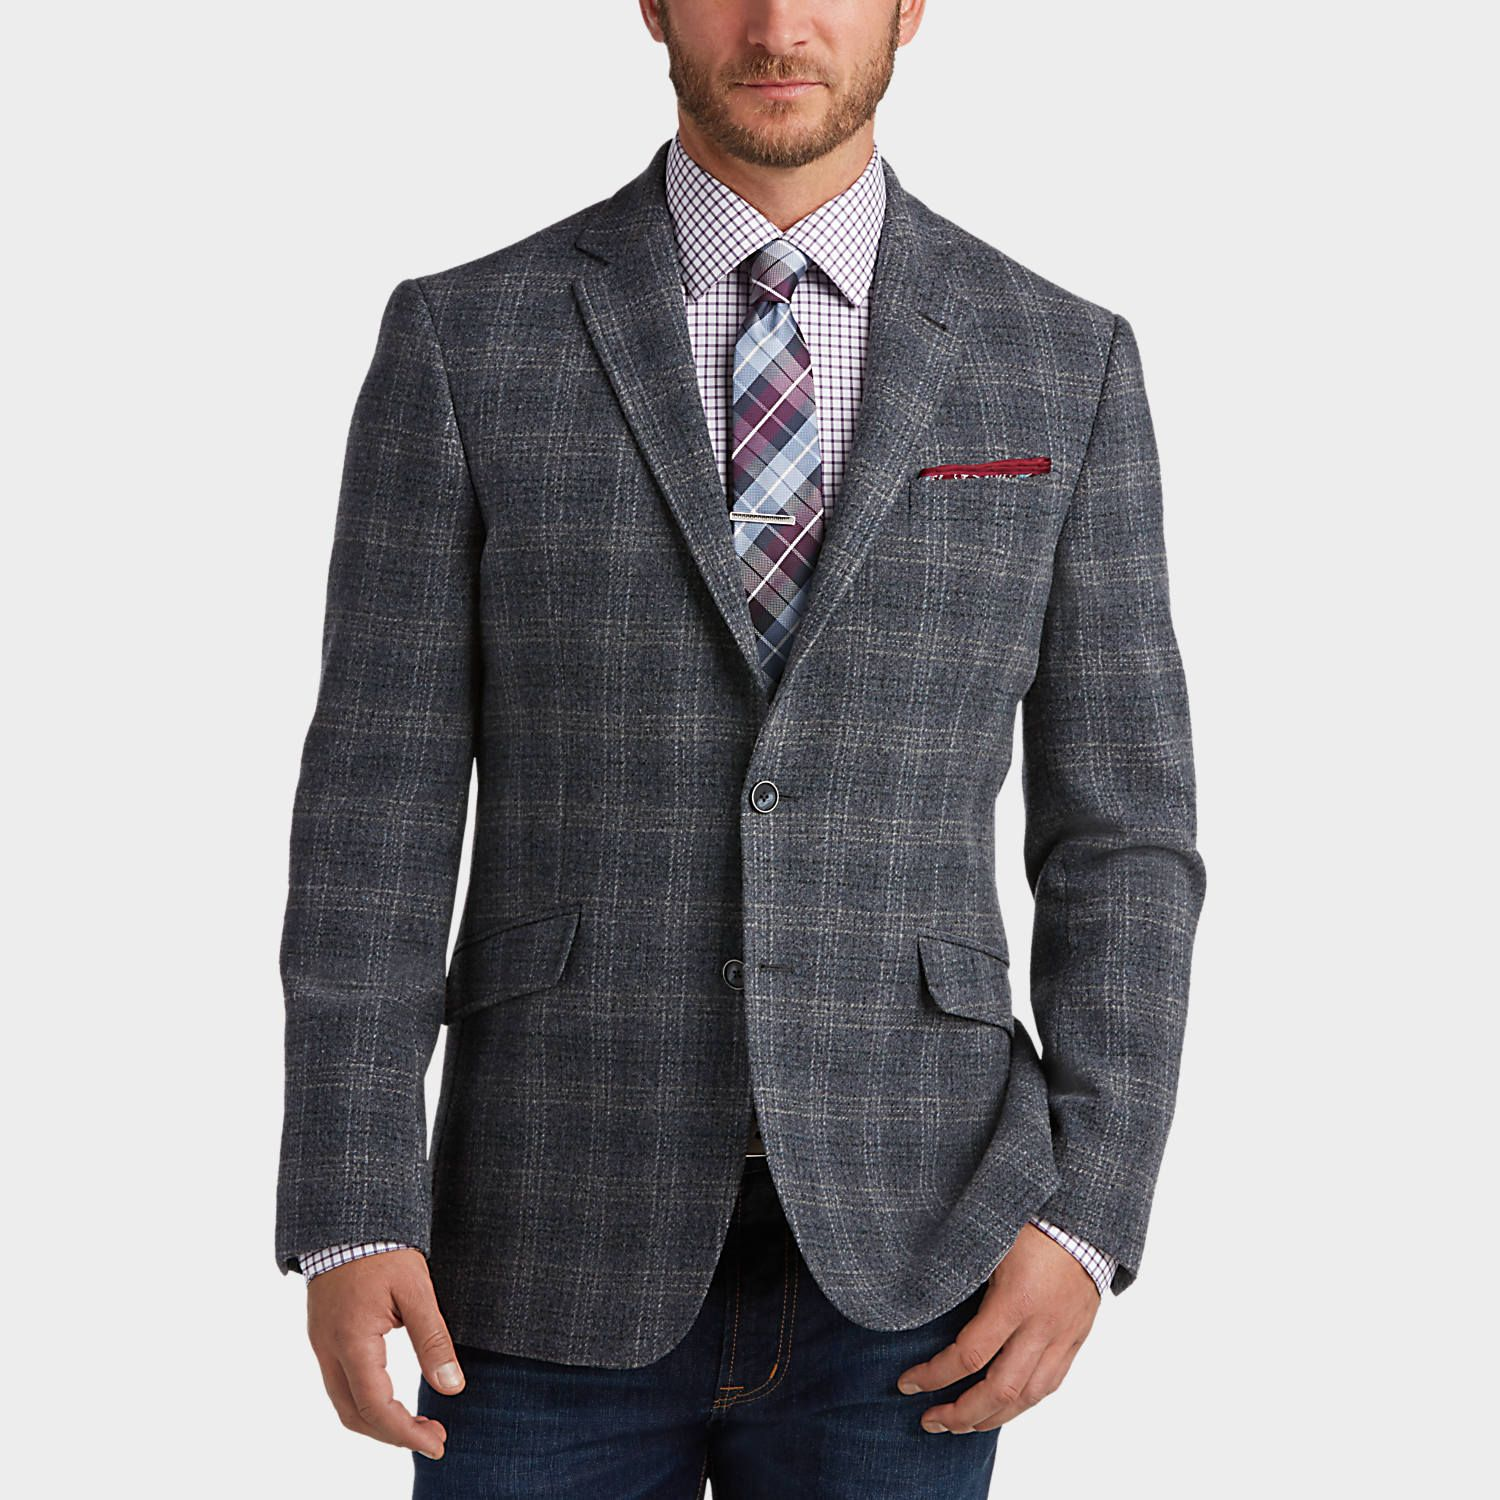 Buy a JOE Joseph Abboud Blue Plaid Slim Fit Sport Coat and other